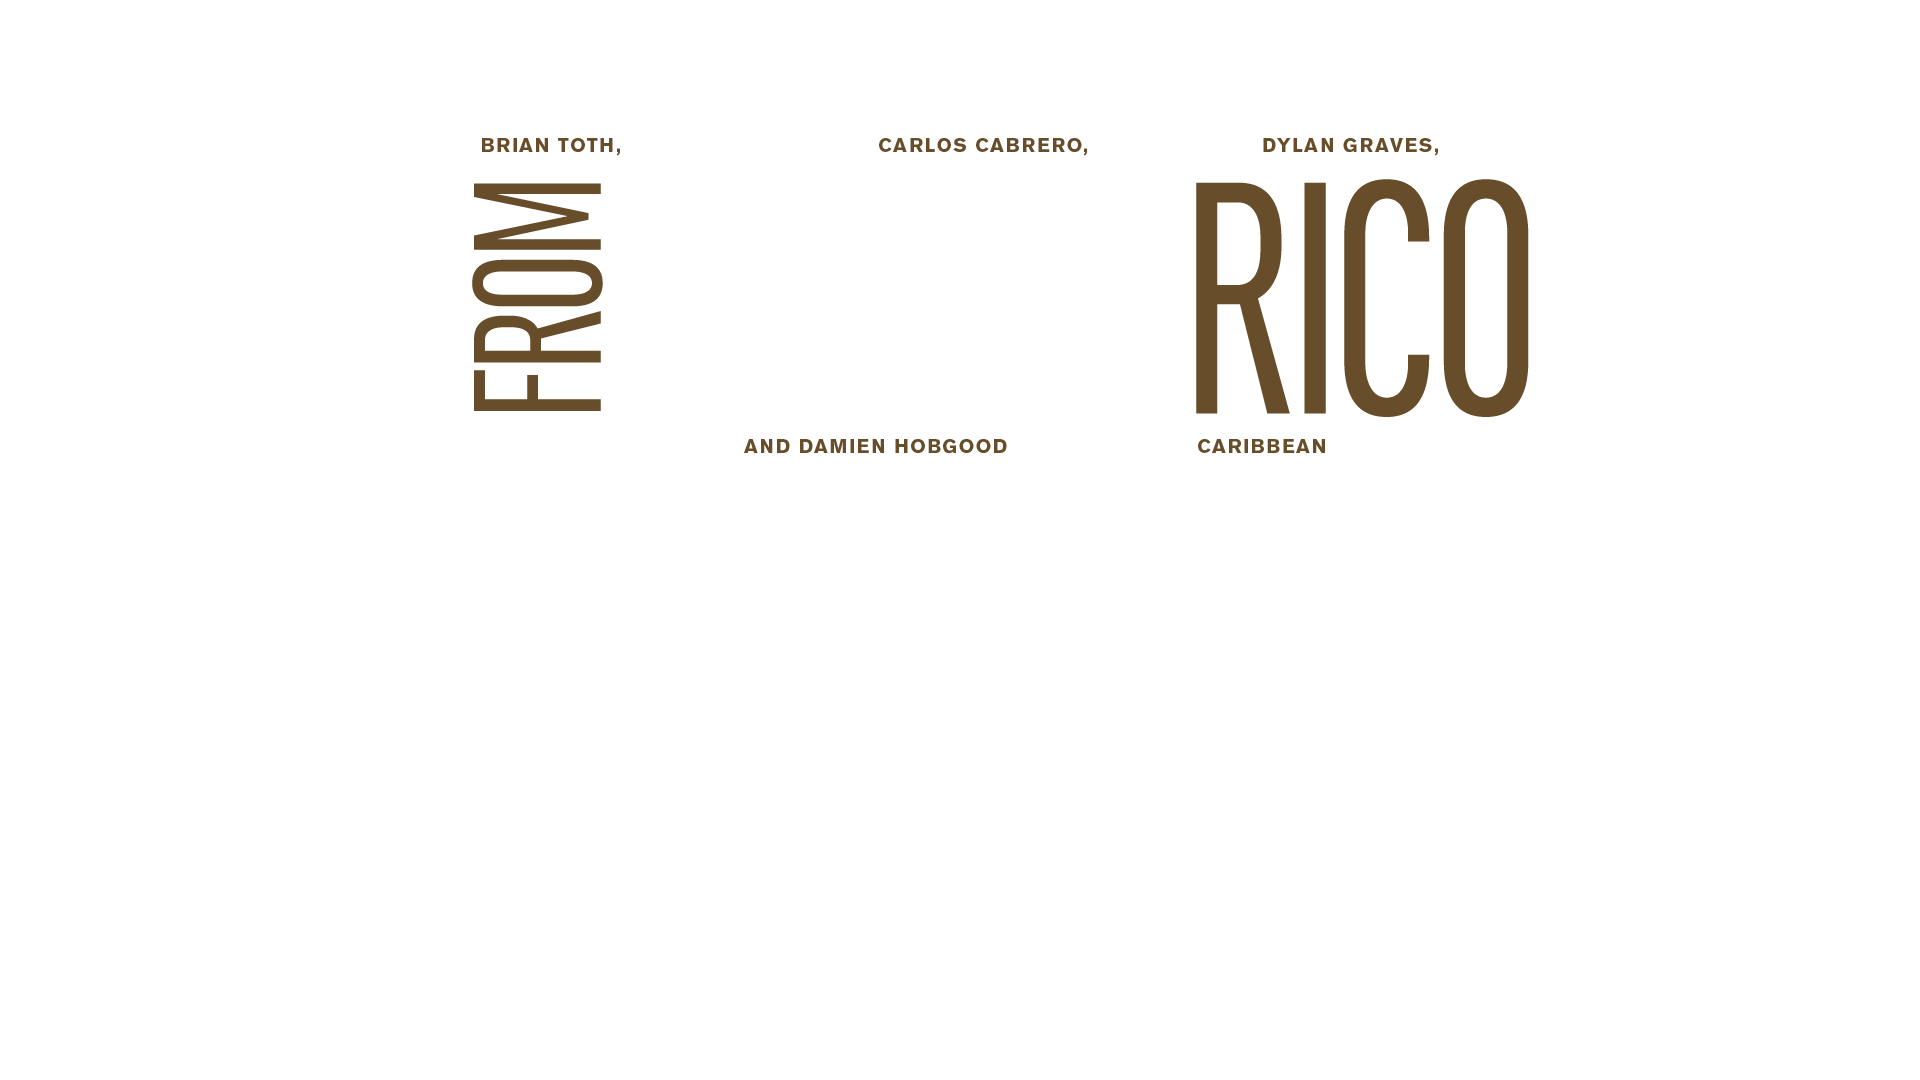 Greetings from puerto rico m4hsunfo